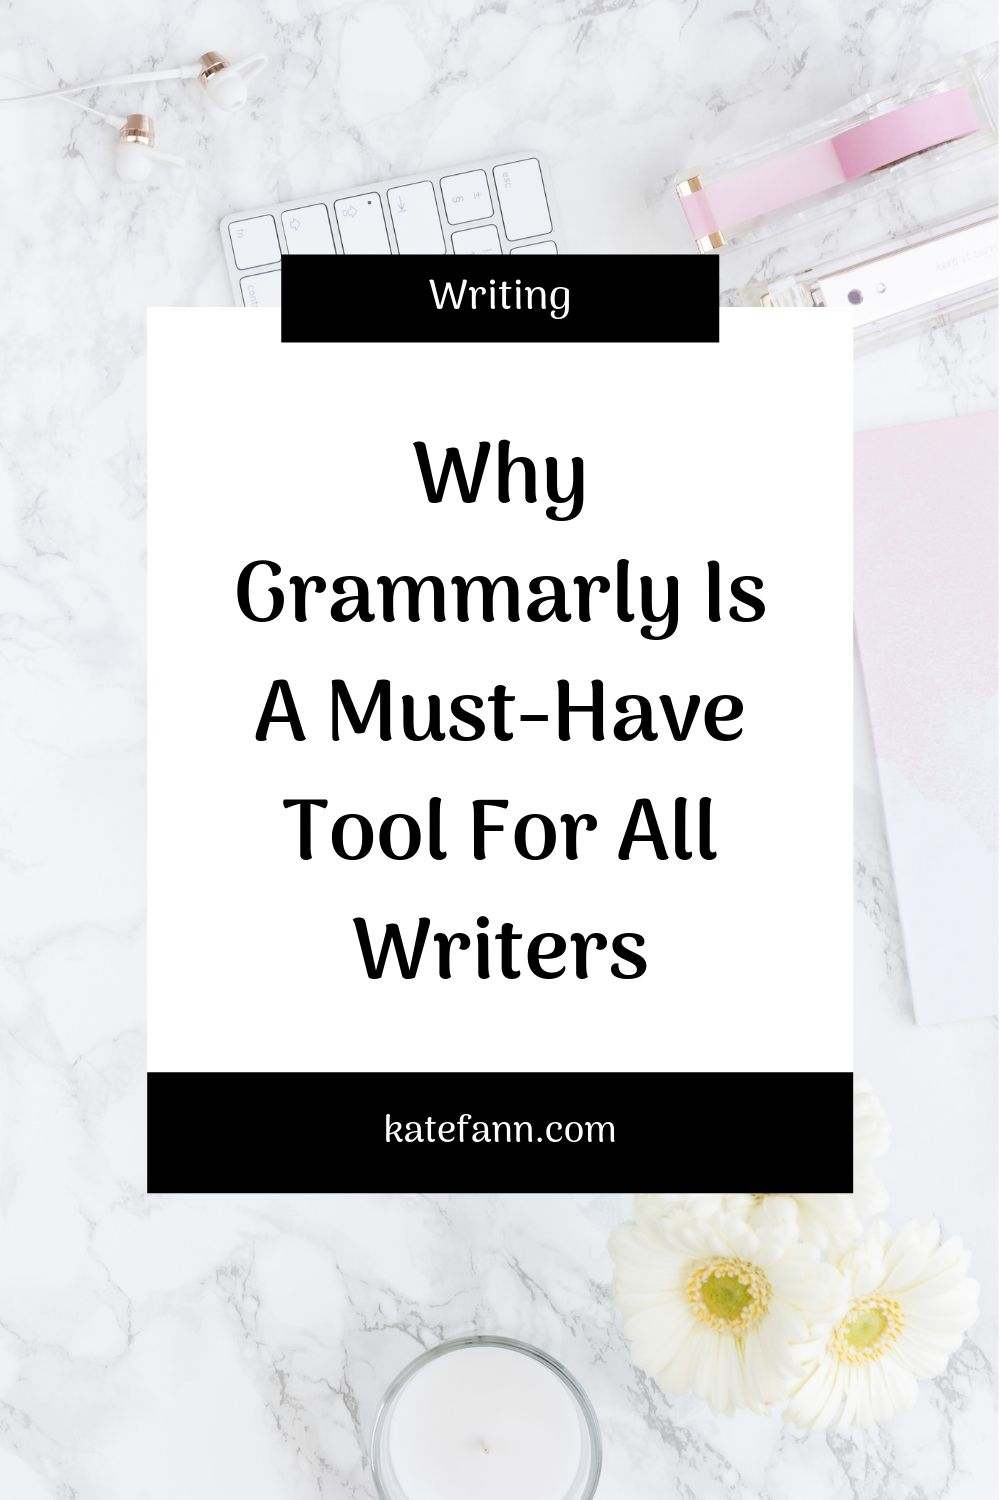 Whether you write books, blogs, website content, social media posts or anything else in between, Grammarly can help you get your message across clearly and correctly. Learn why I trust Grammarly and how you (and your writing) can greatly benefit from using this tool.